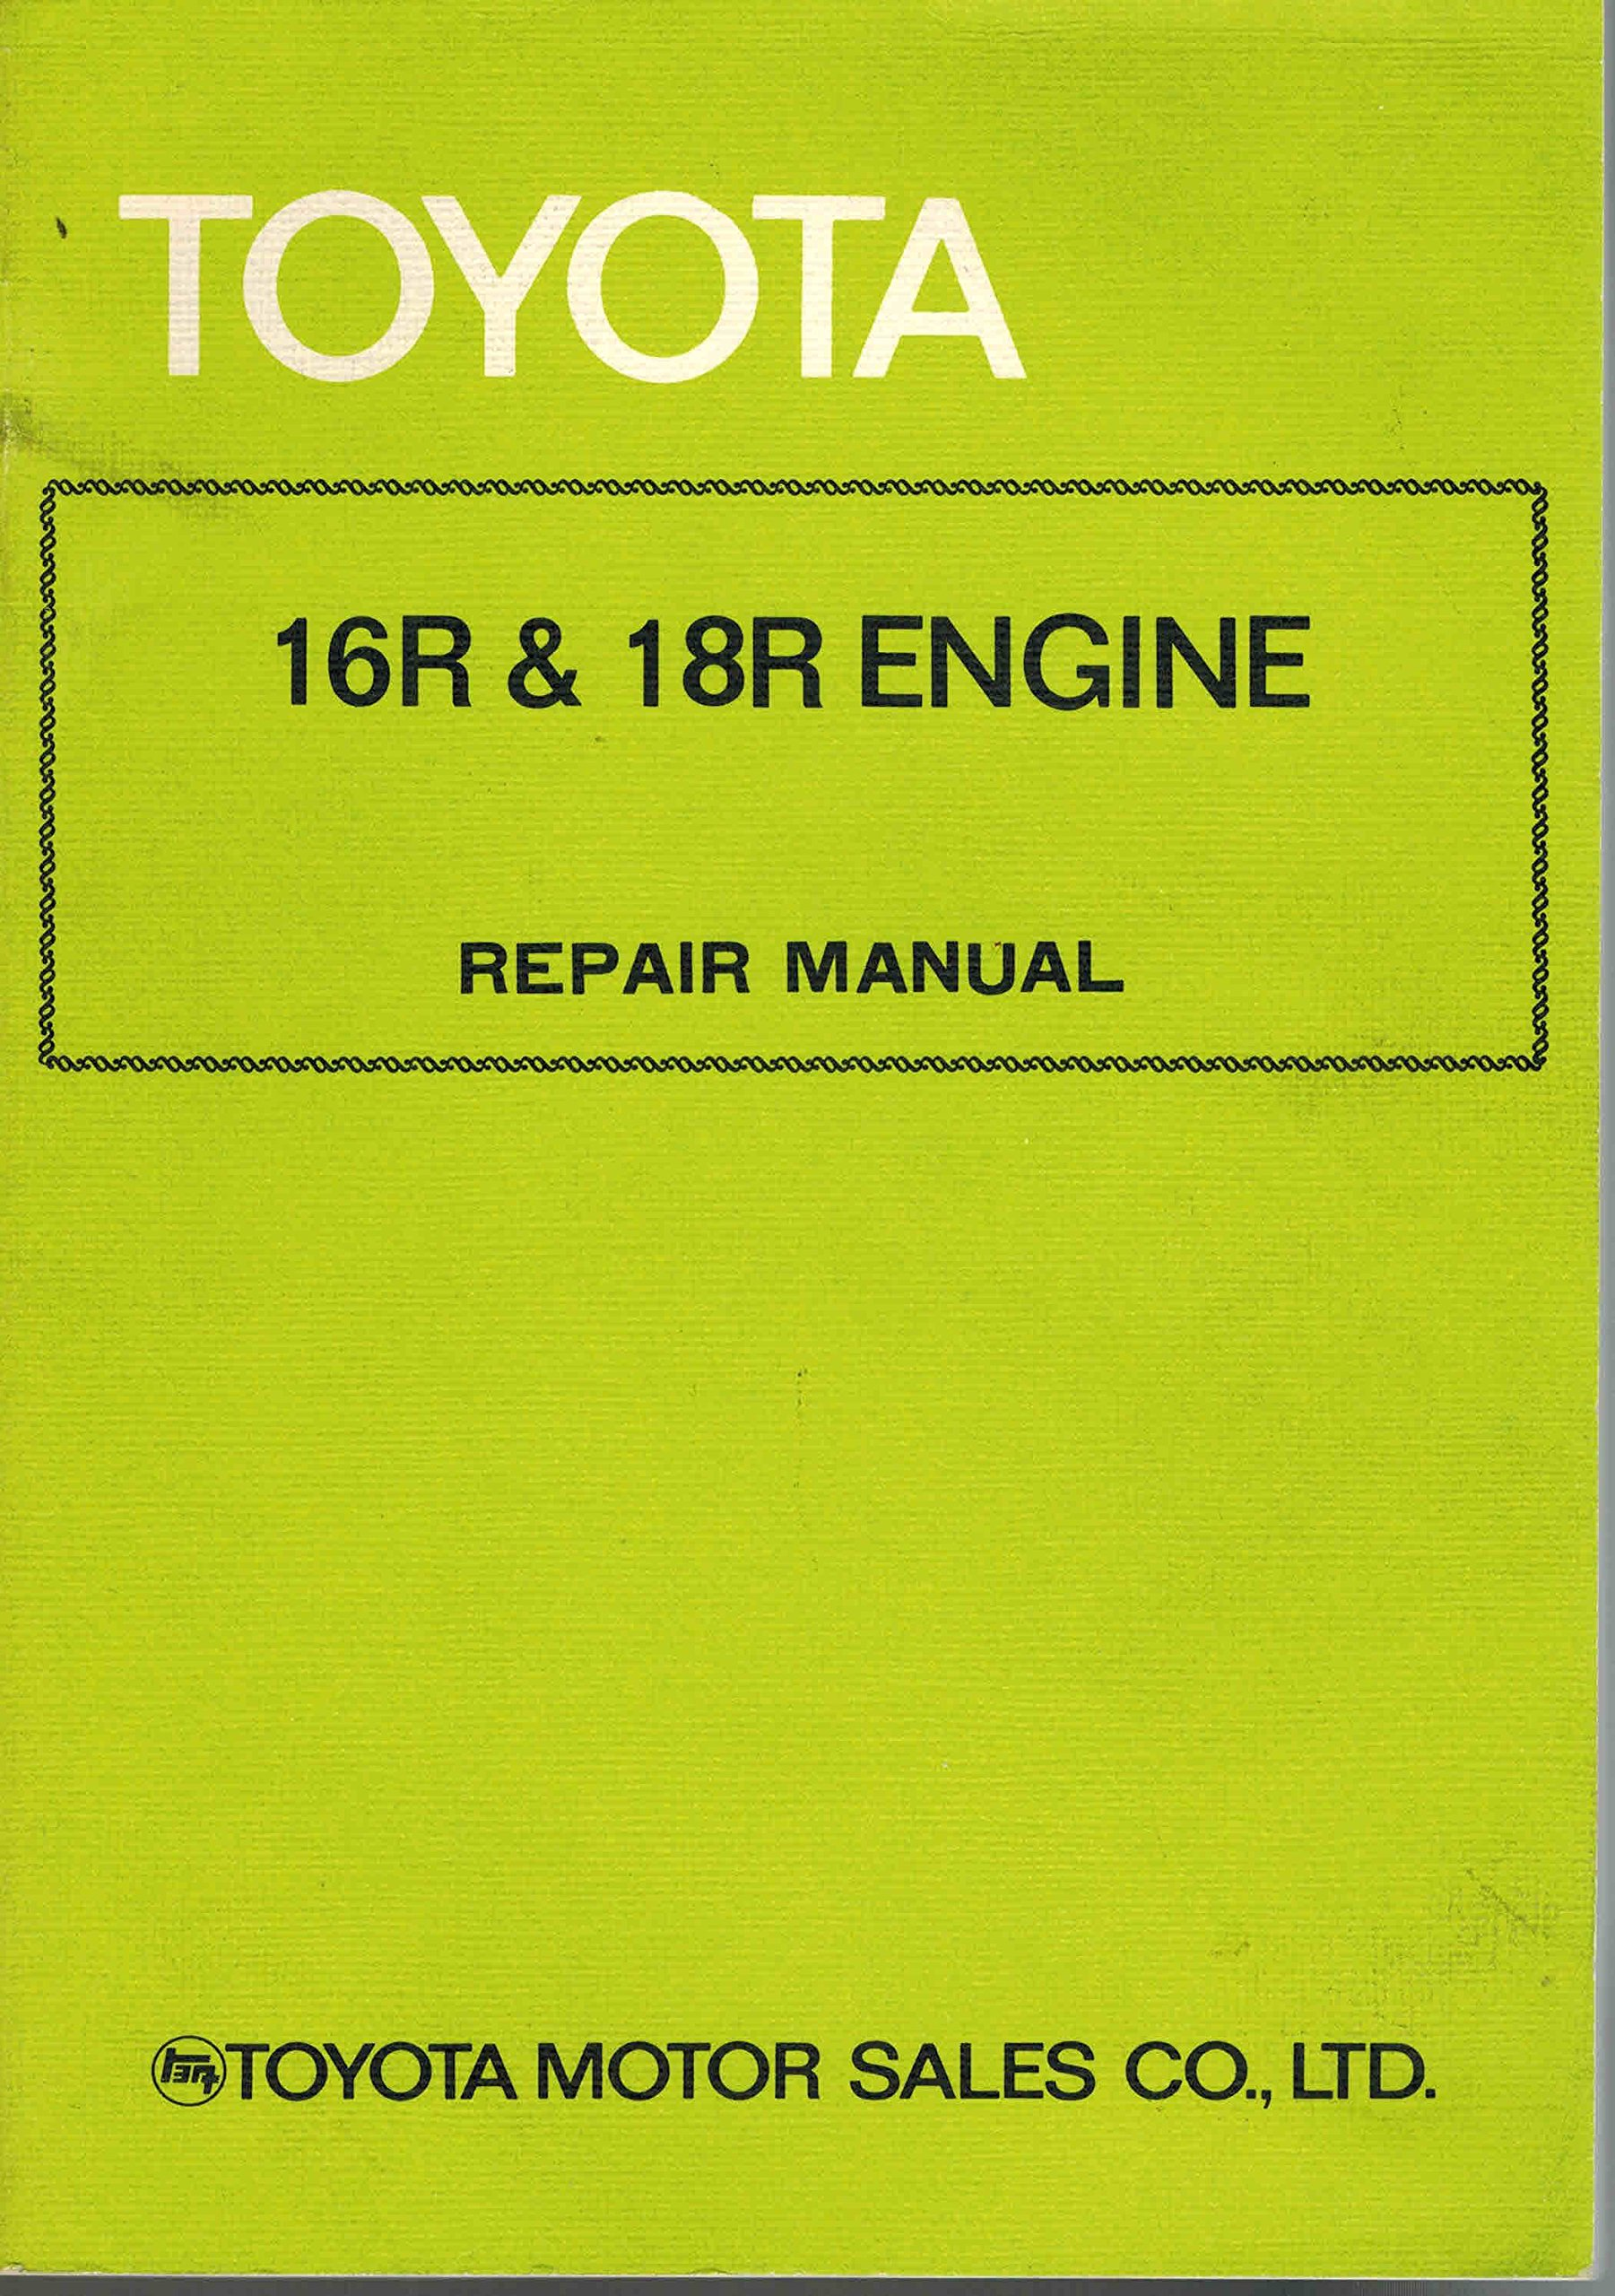 toyota 16r 18r engine repair manual amazon co uk editorial staff rh amazon co uk Toyota Engine Toyota Engine